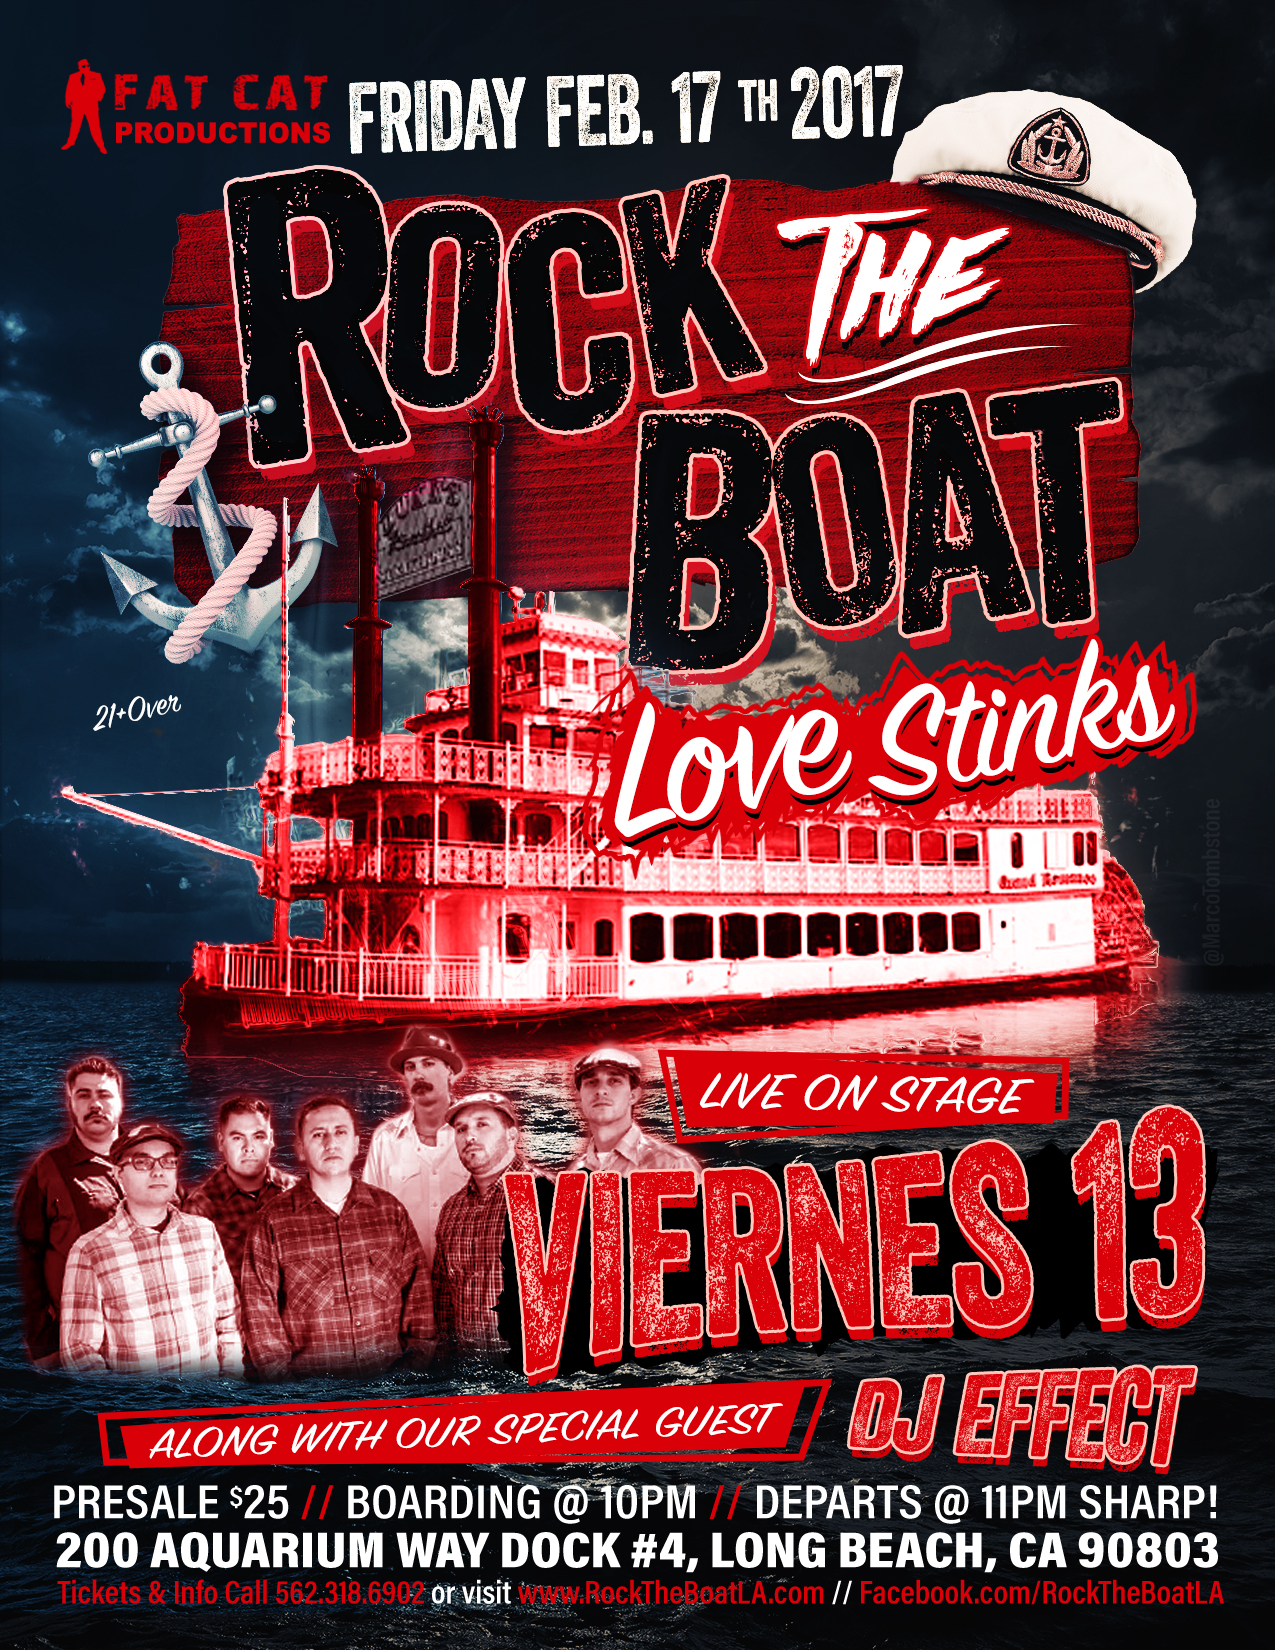 POSTPONED Viernes 13 at ROCK THE BOAT Tickets 02/24/17